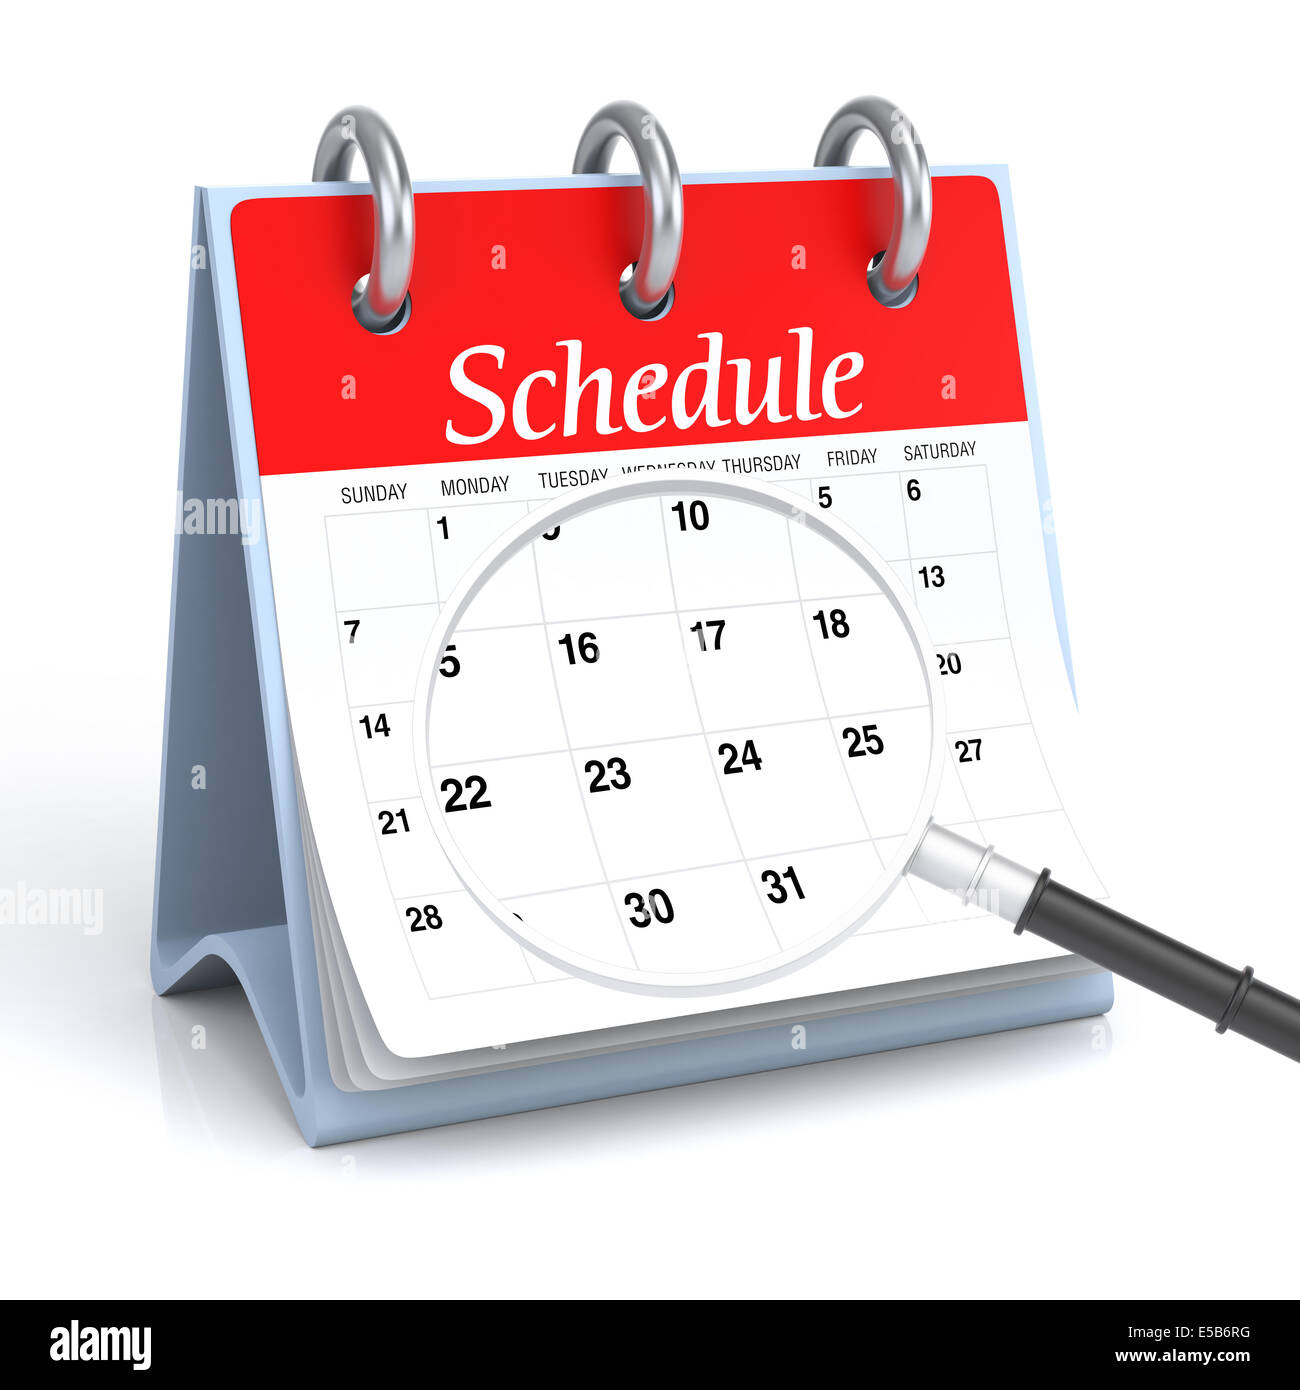 Schedule with Magnify Glass - Stock Image